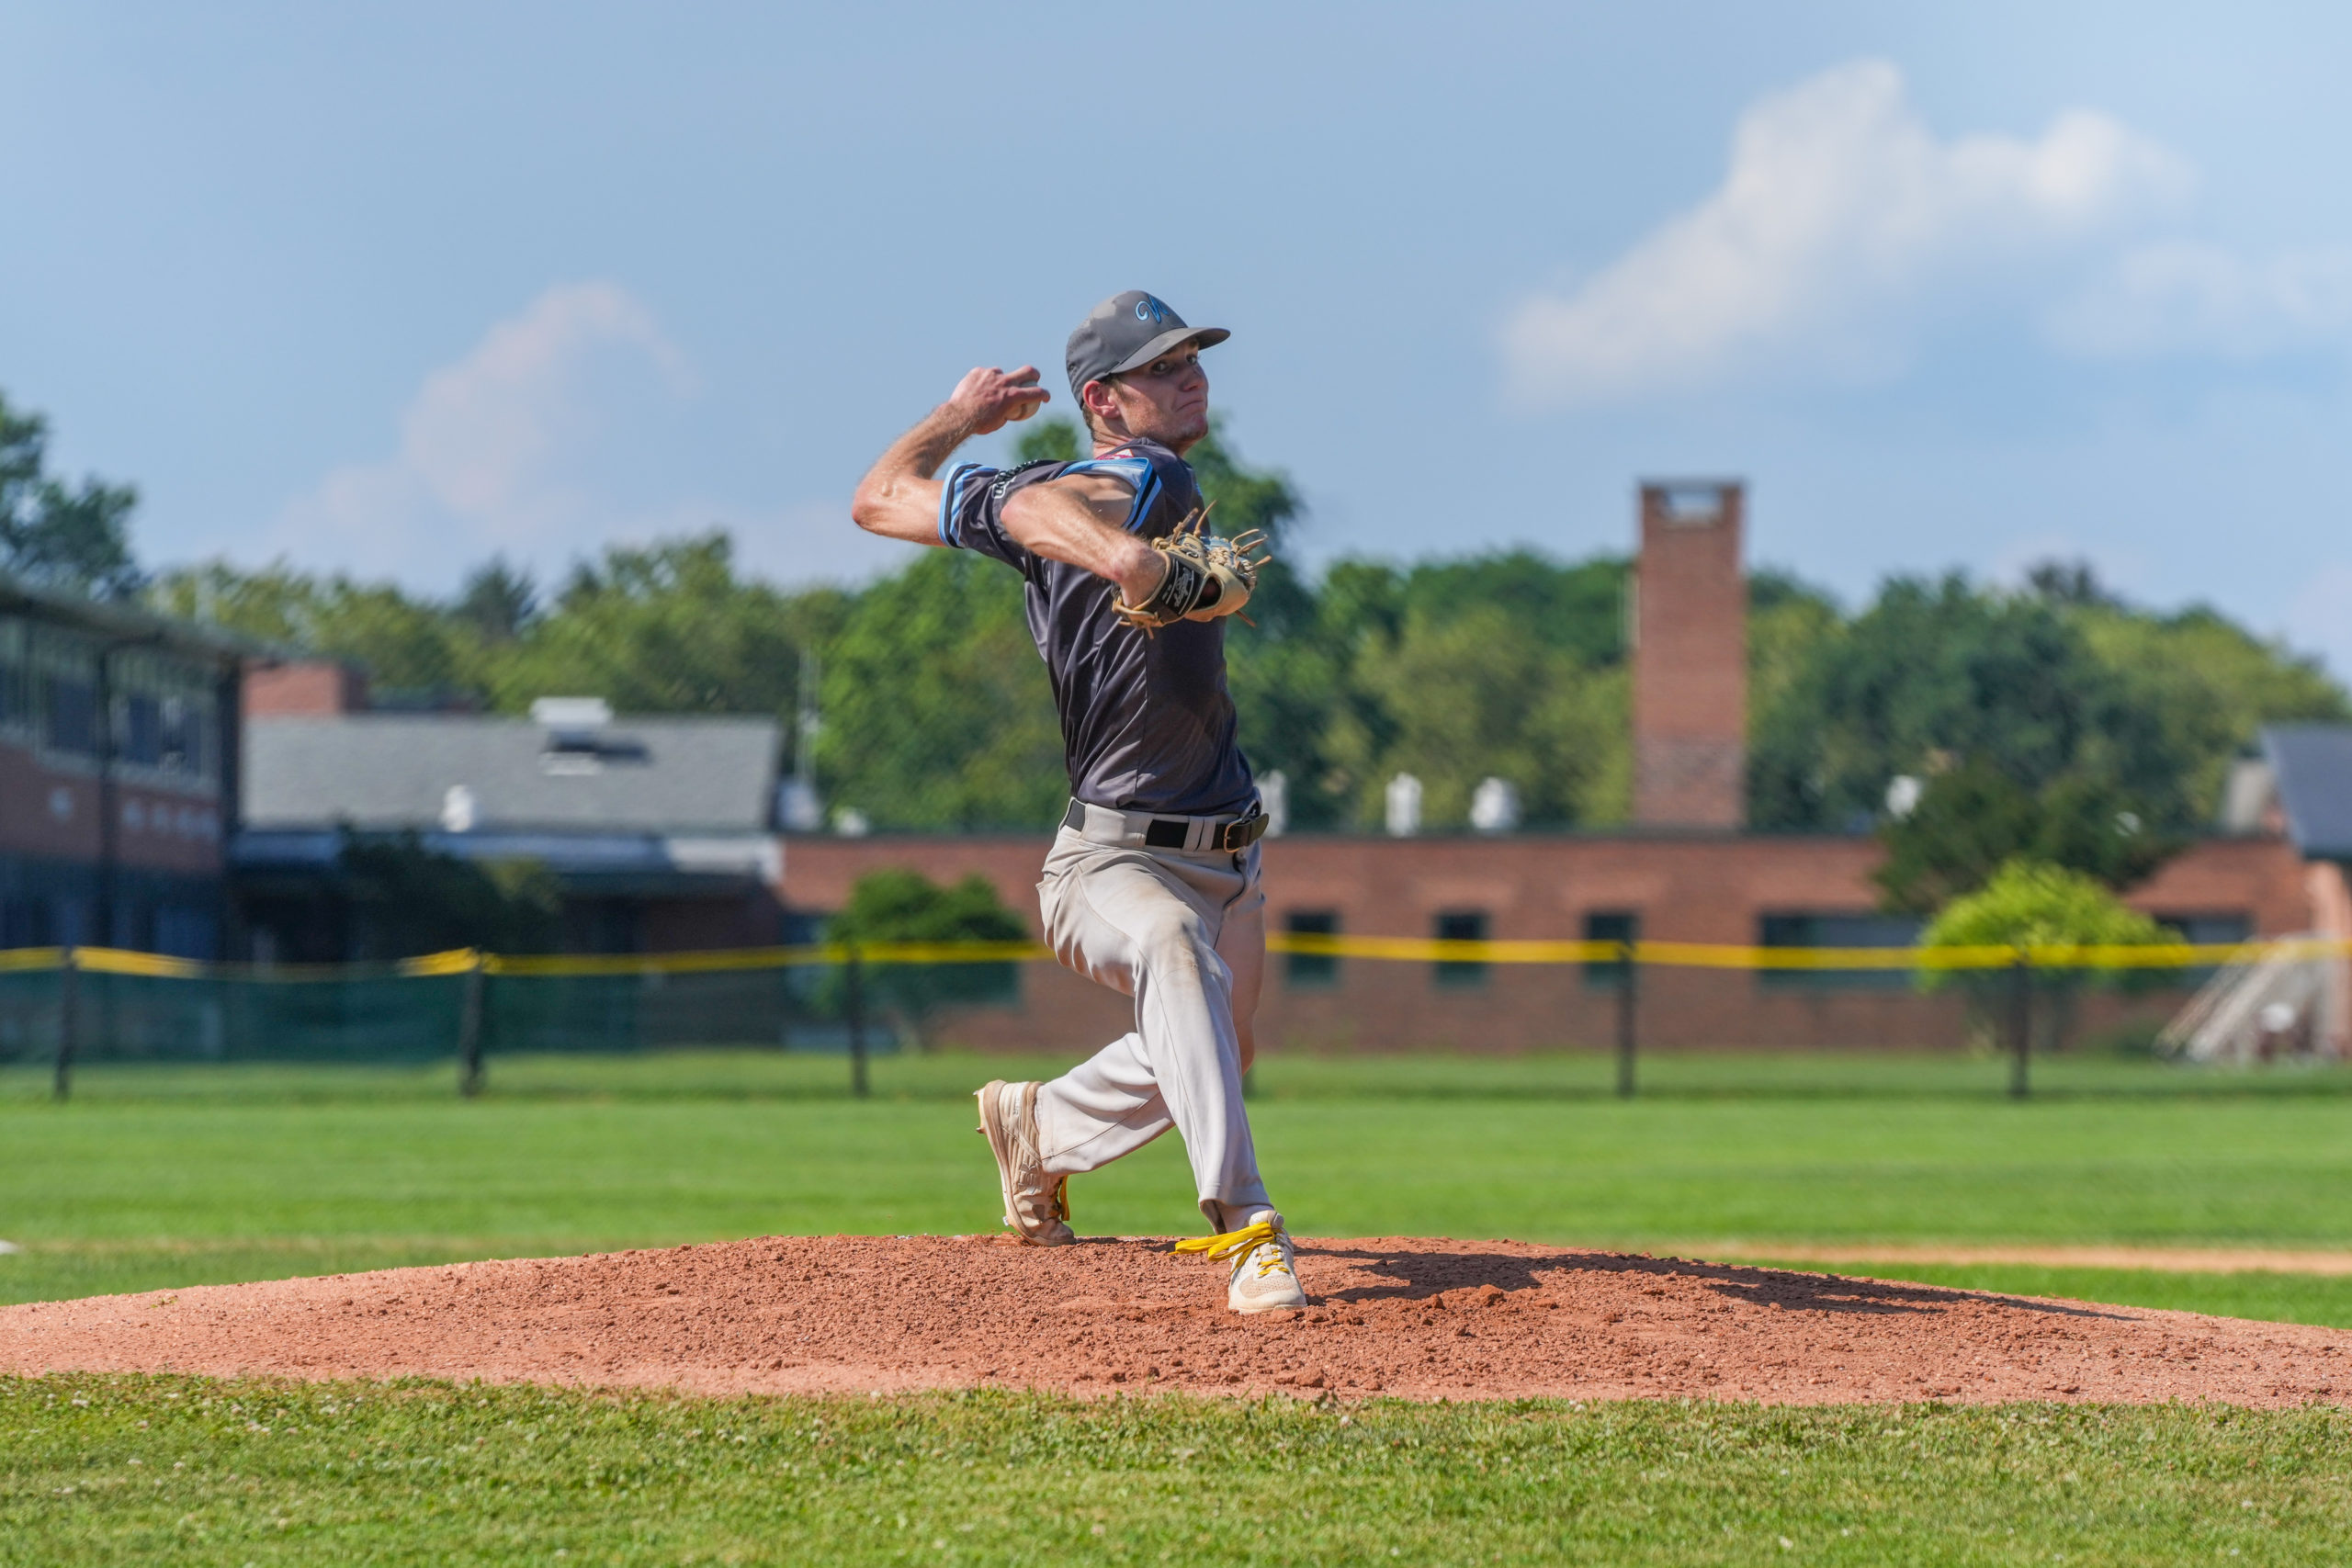 Sag Harbor Whaler John Collins (Merrimack) pitched well in game one of the semis against Southampton, allowing just one earned run in six innings.